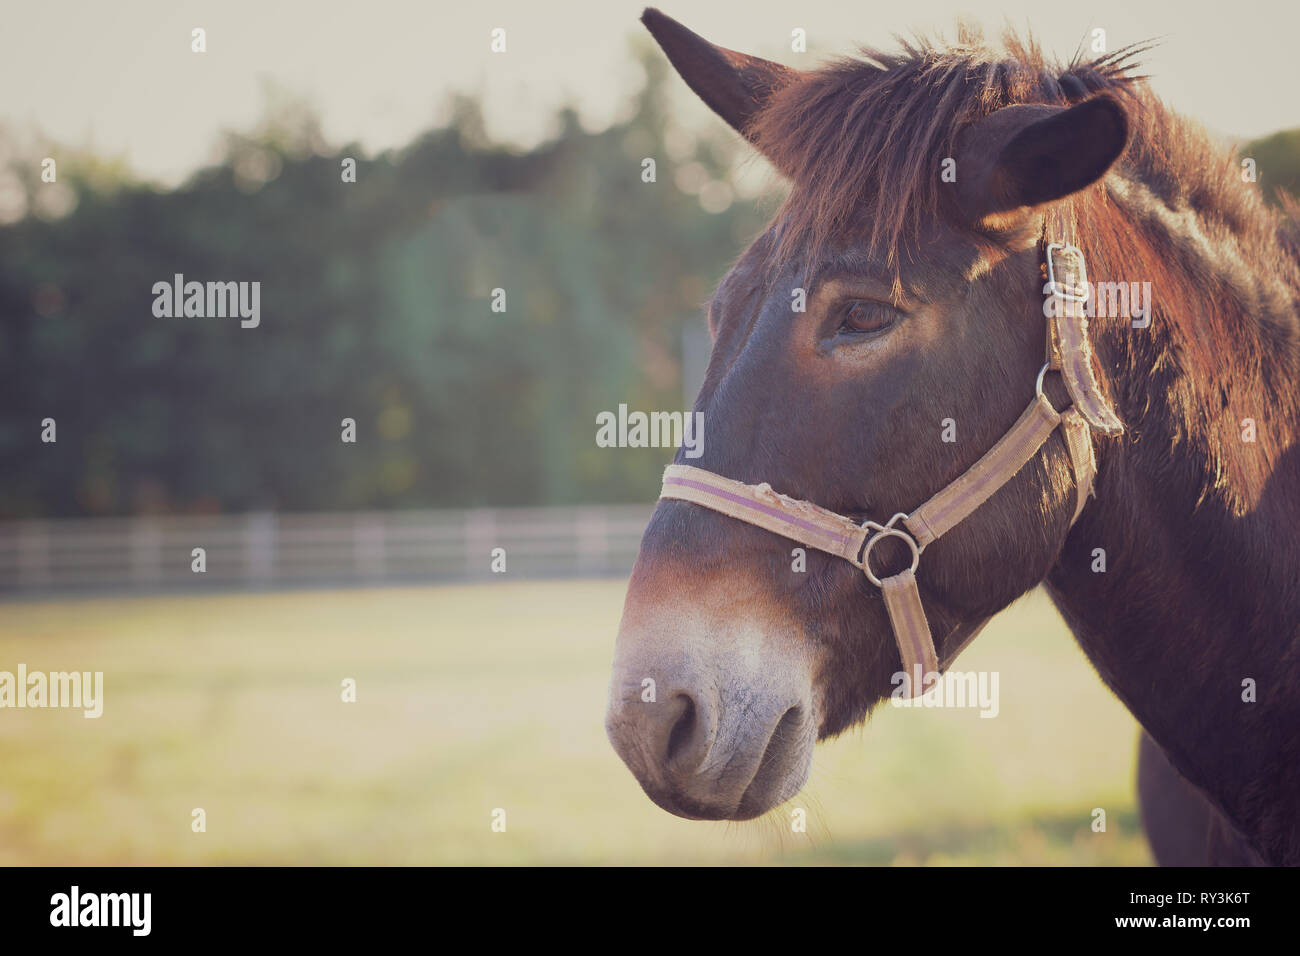 Closeup of mule face in the farm and sunshine in the evening. Concept of livestock. Copy space for text. Stock Photo